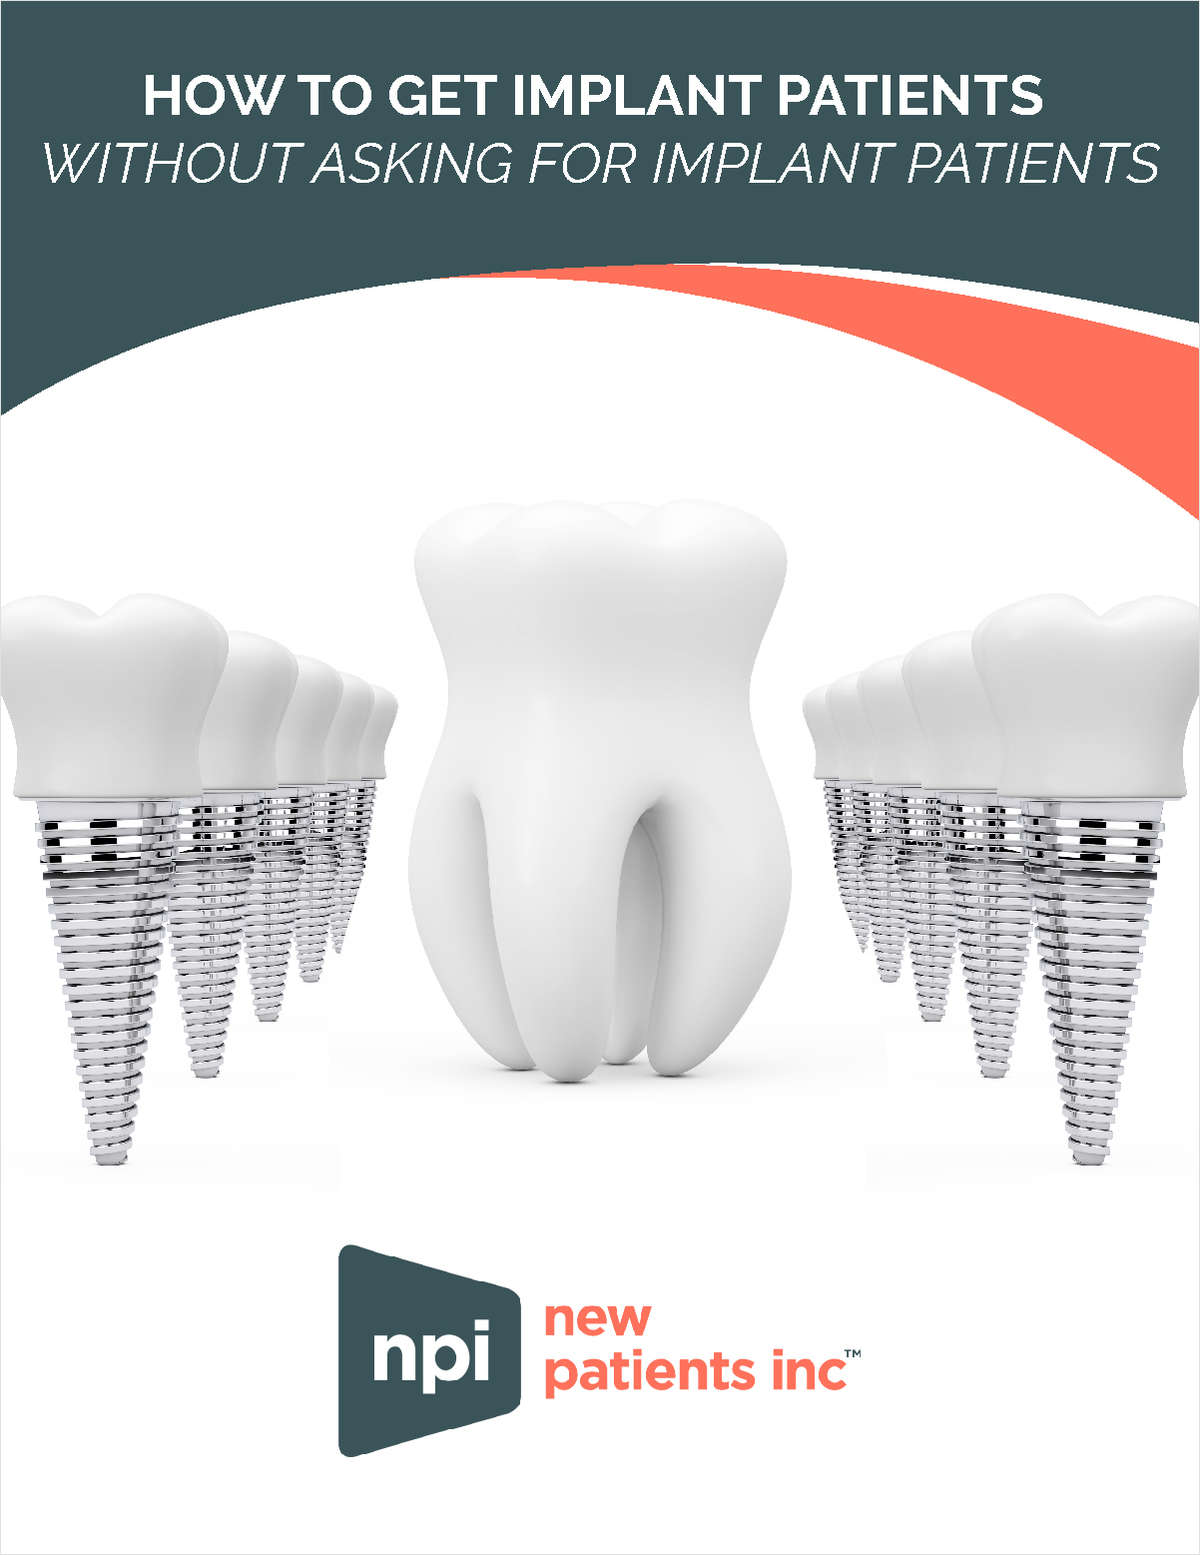 How to Get Implant Patients - Without Asking for Implant Patients